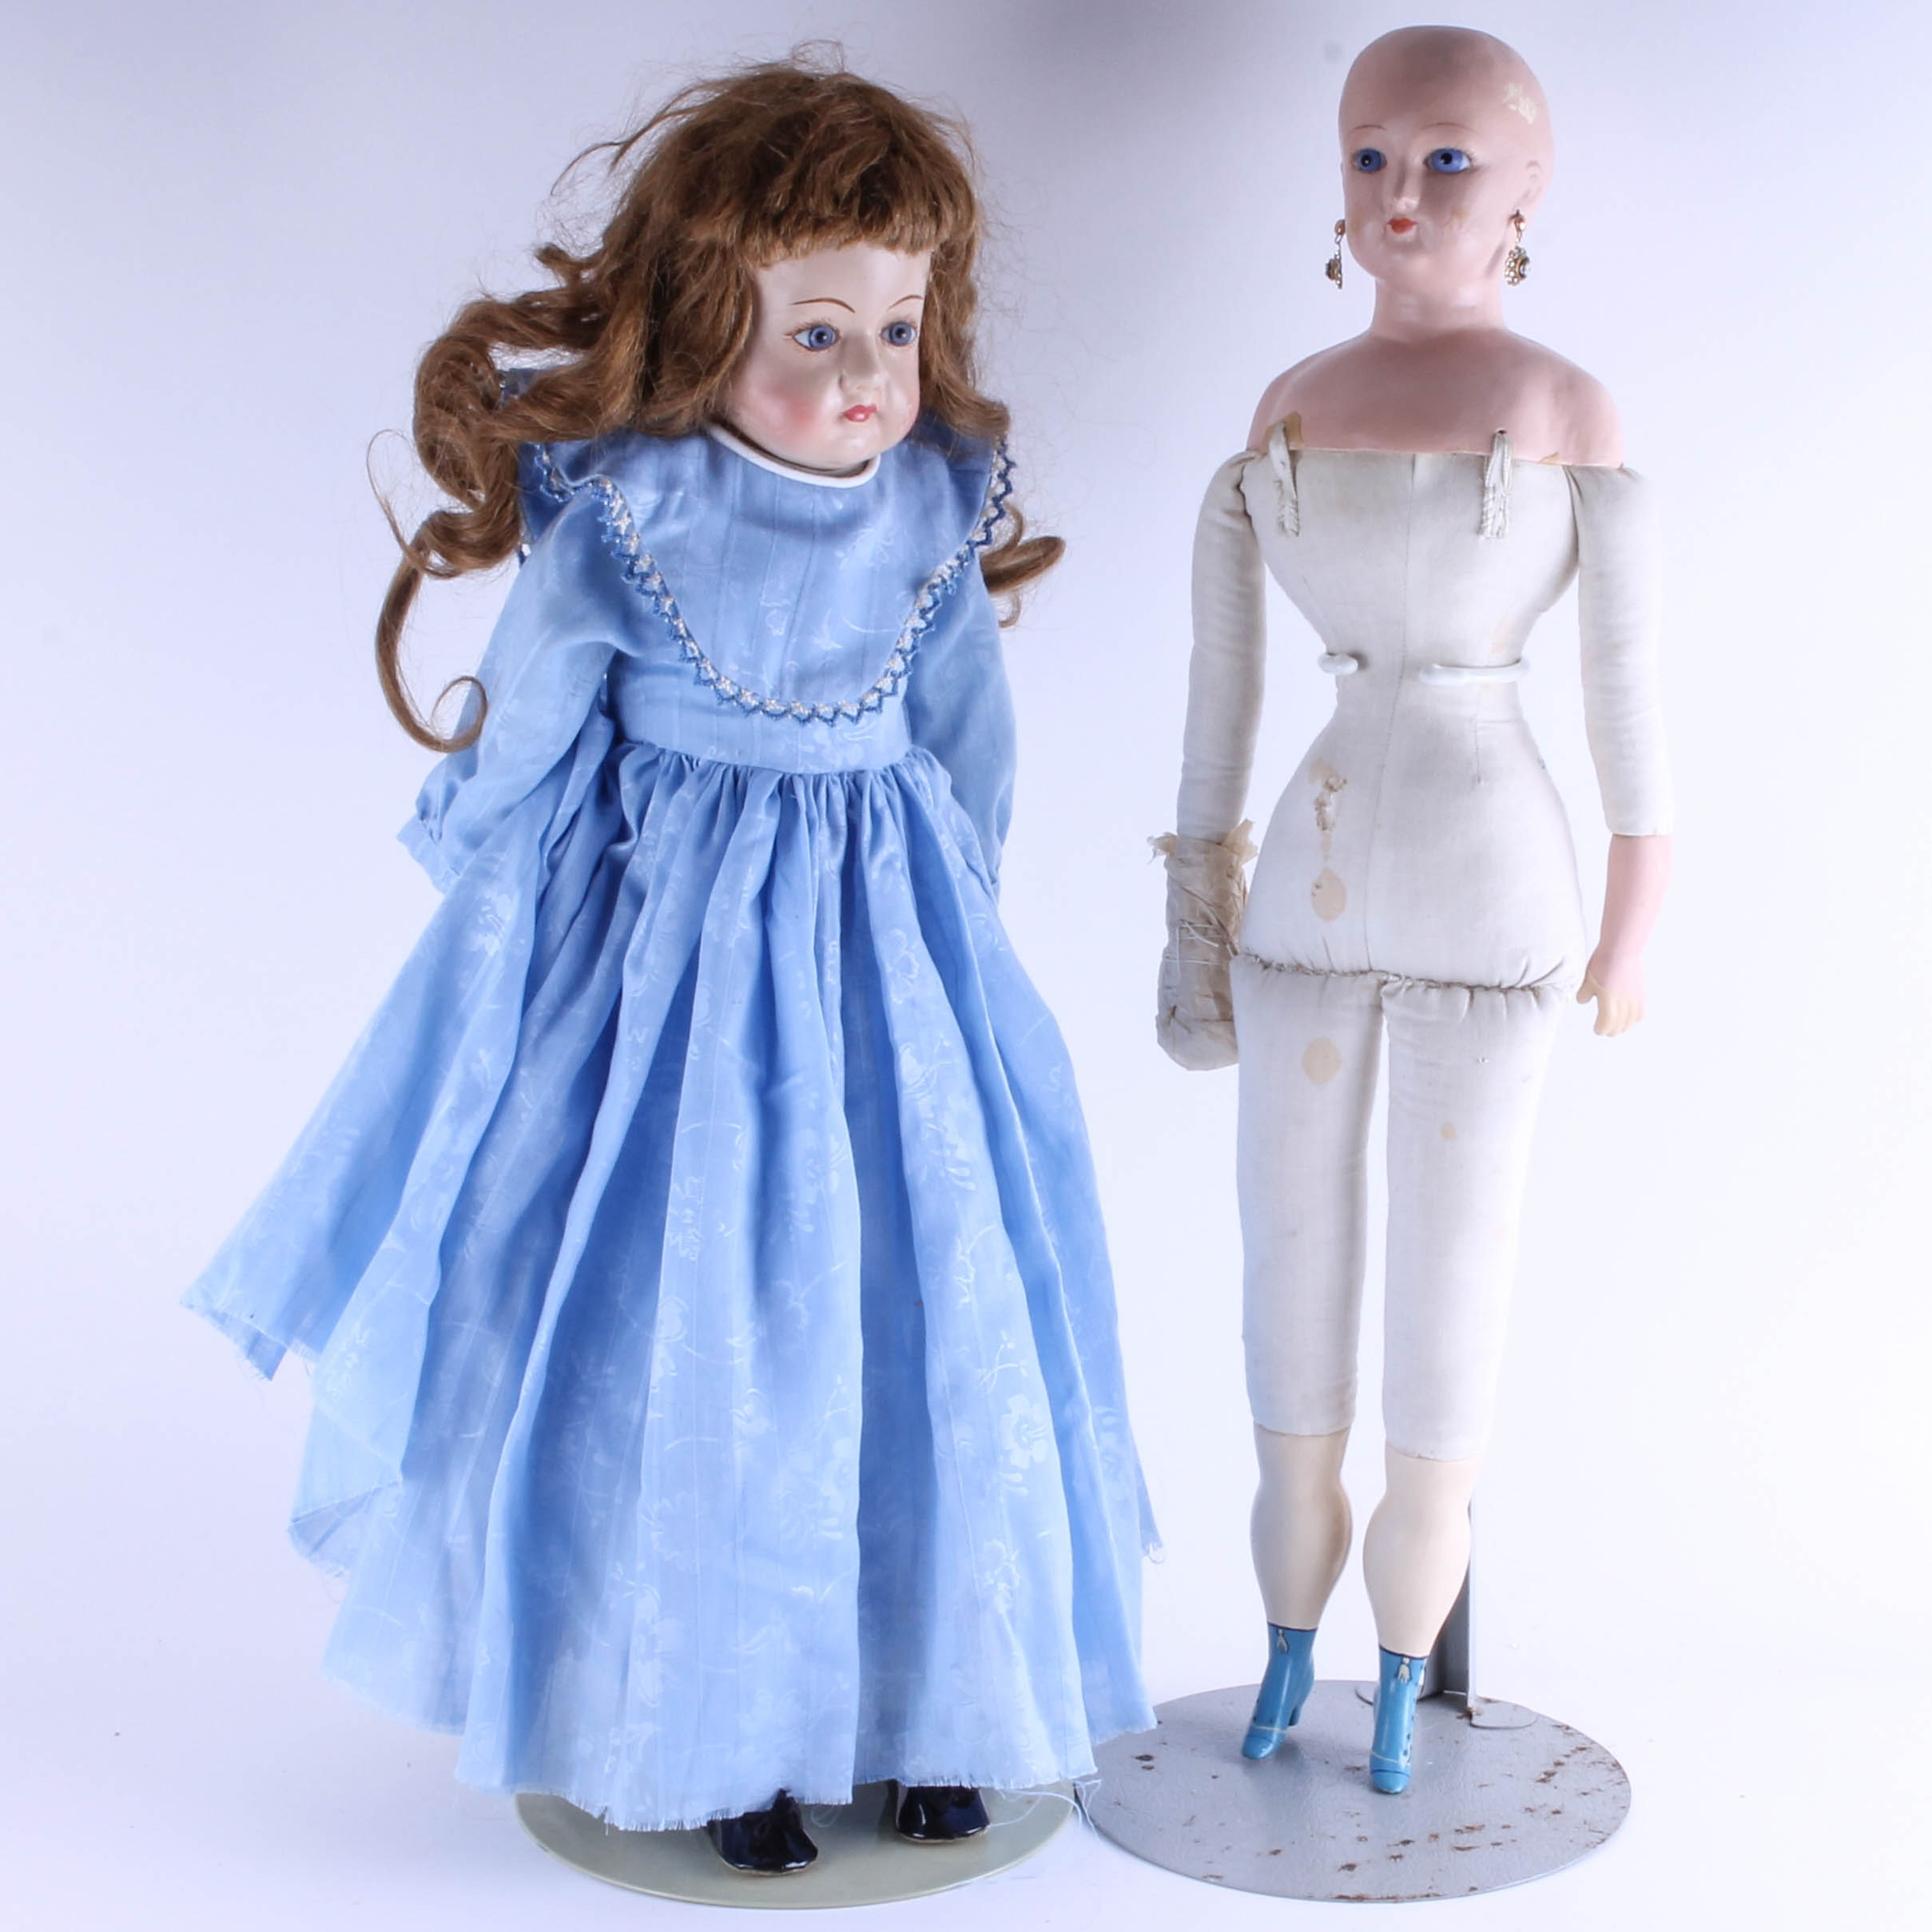 Two Vintage Composition and Kid Leather Dolls